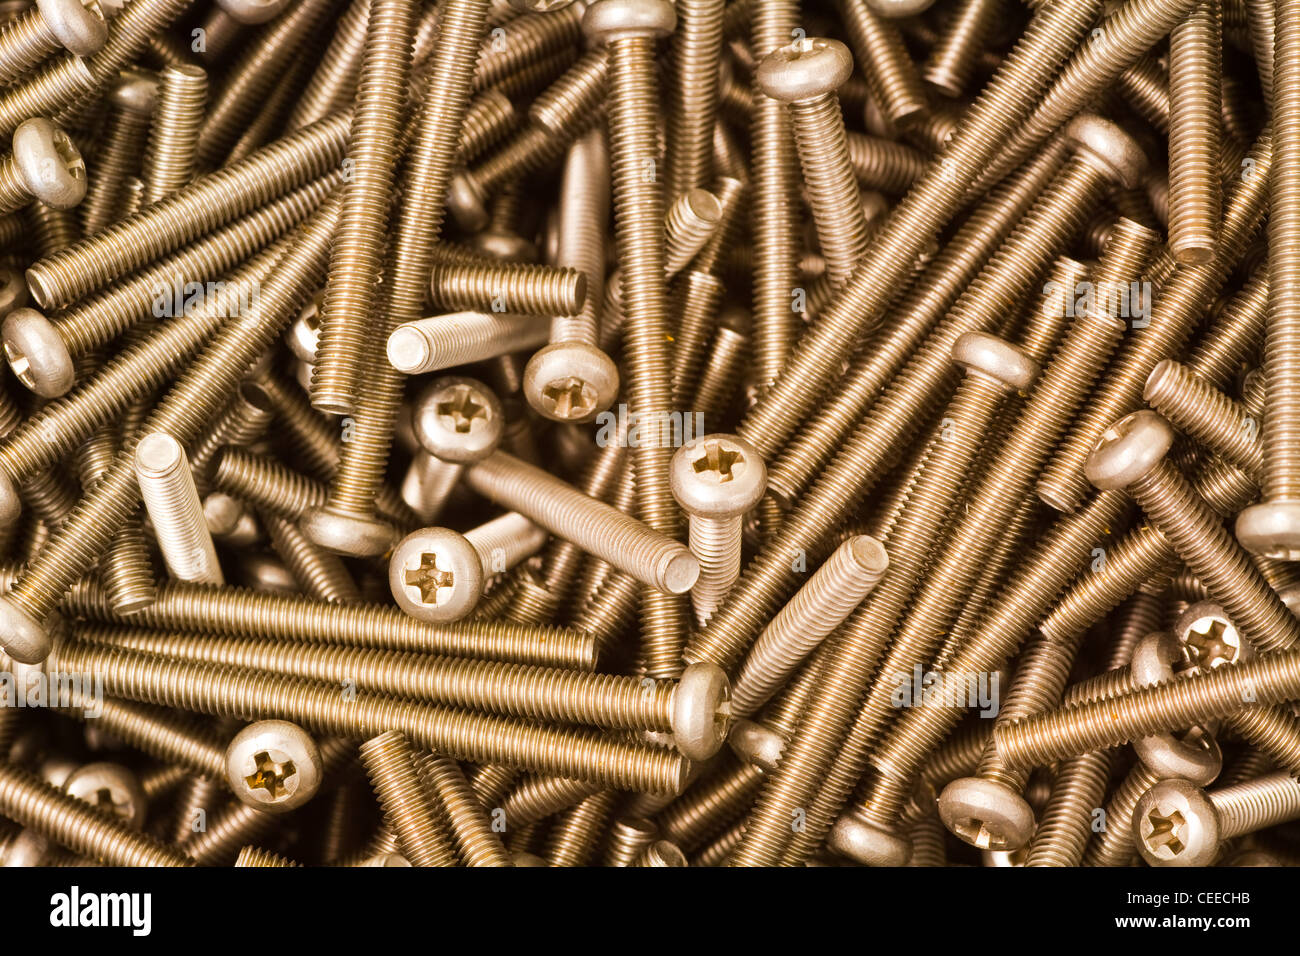 A selection of steel machine screws - Stock Image